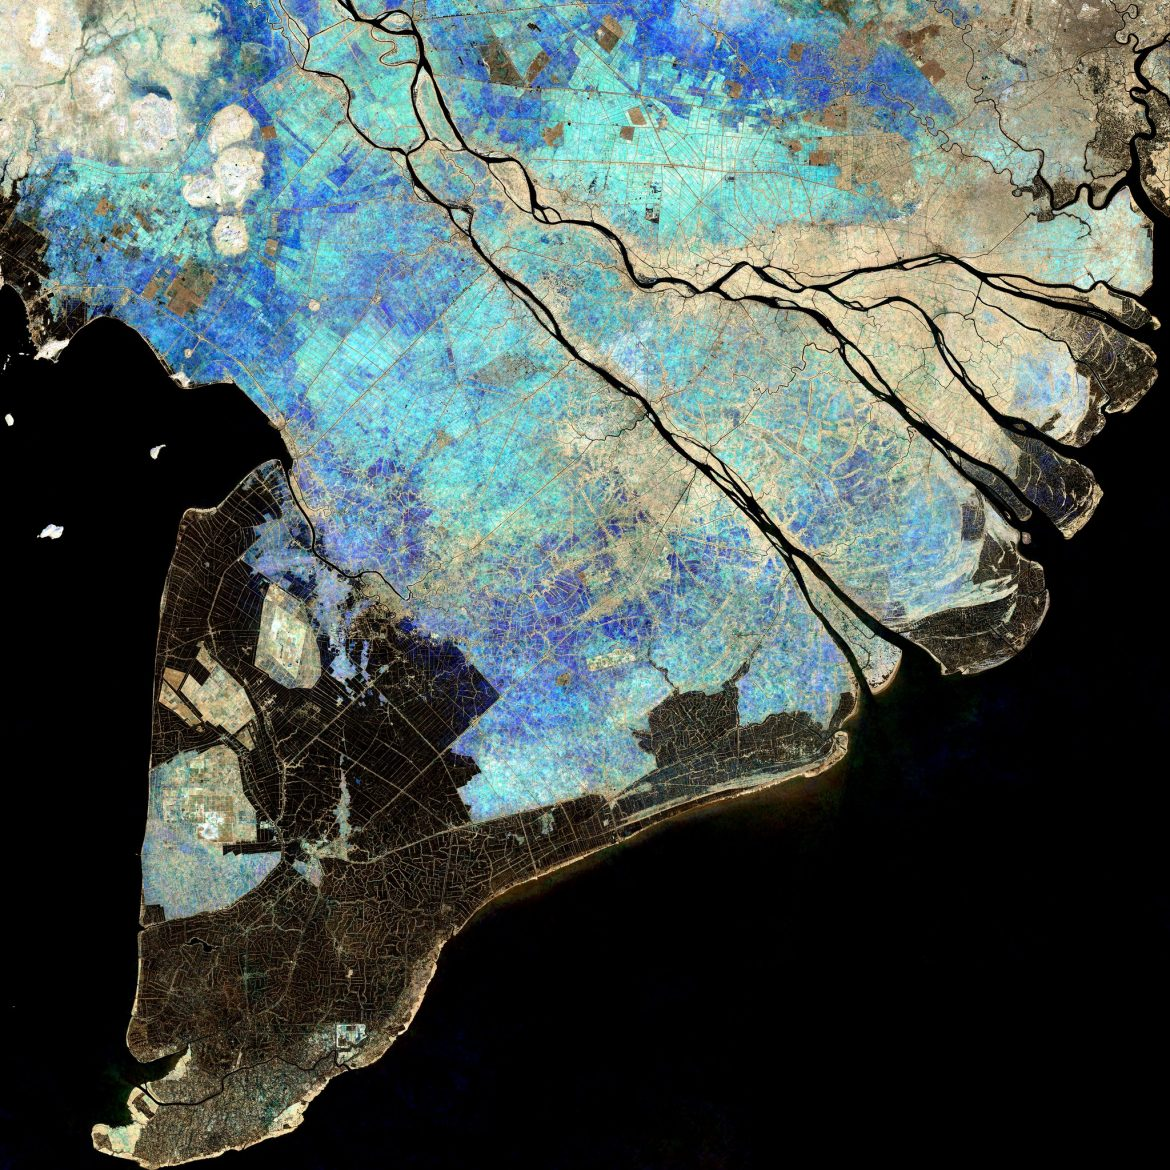 Mekong Delta: Monitoring sedimentation from space